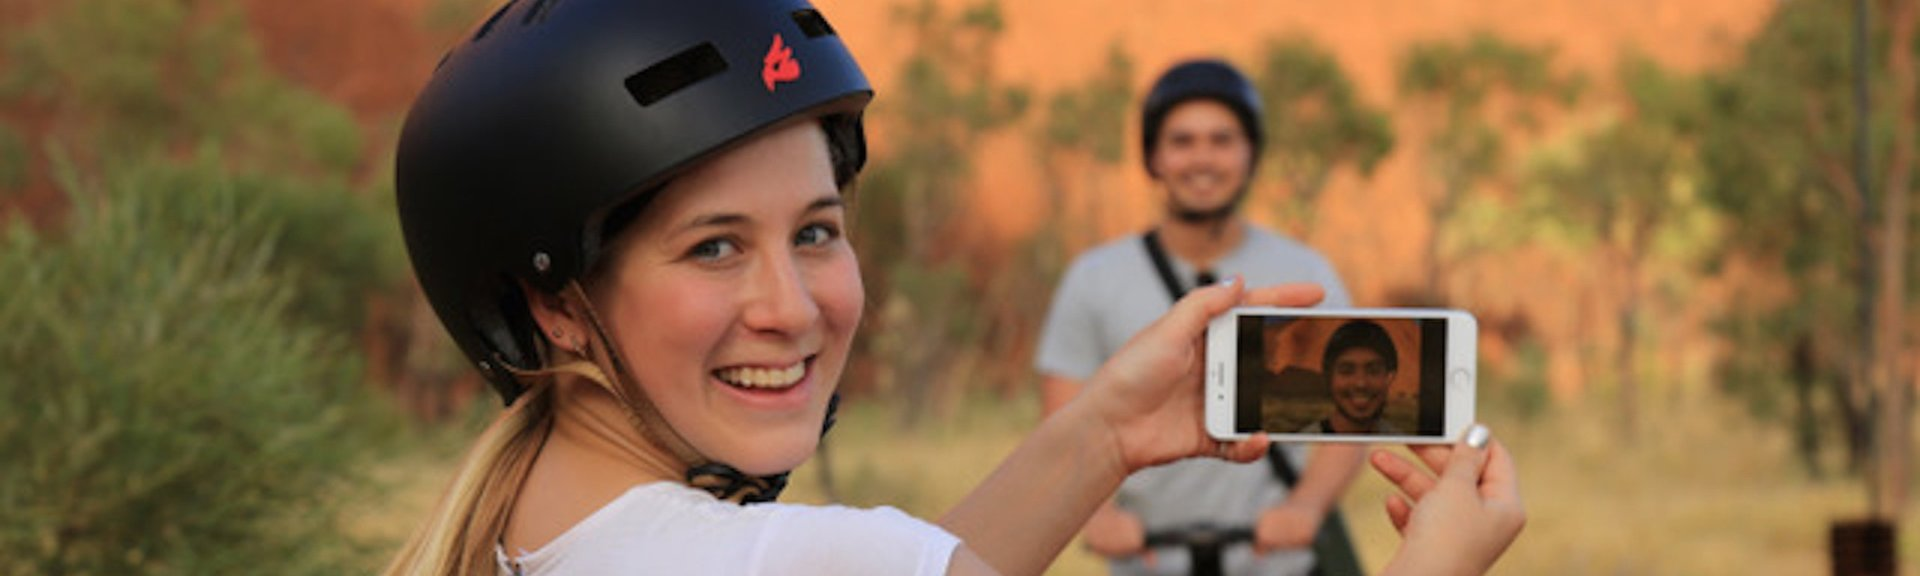 Exploring Uluru by Segway. Photo: Uluru Segway Tours